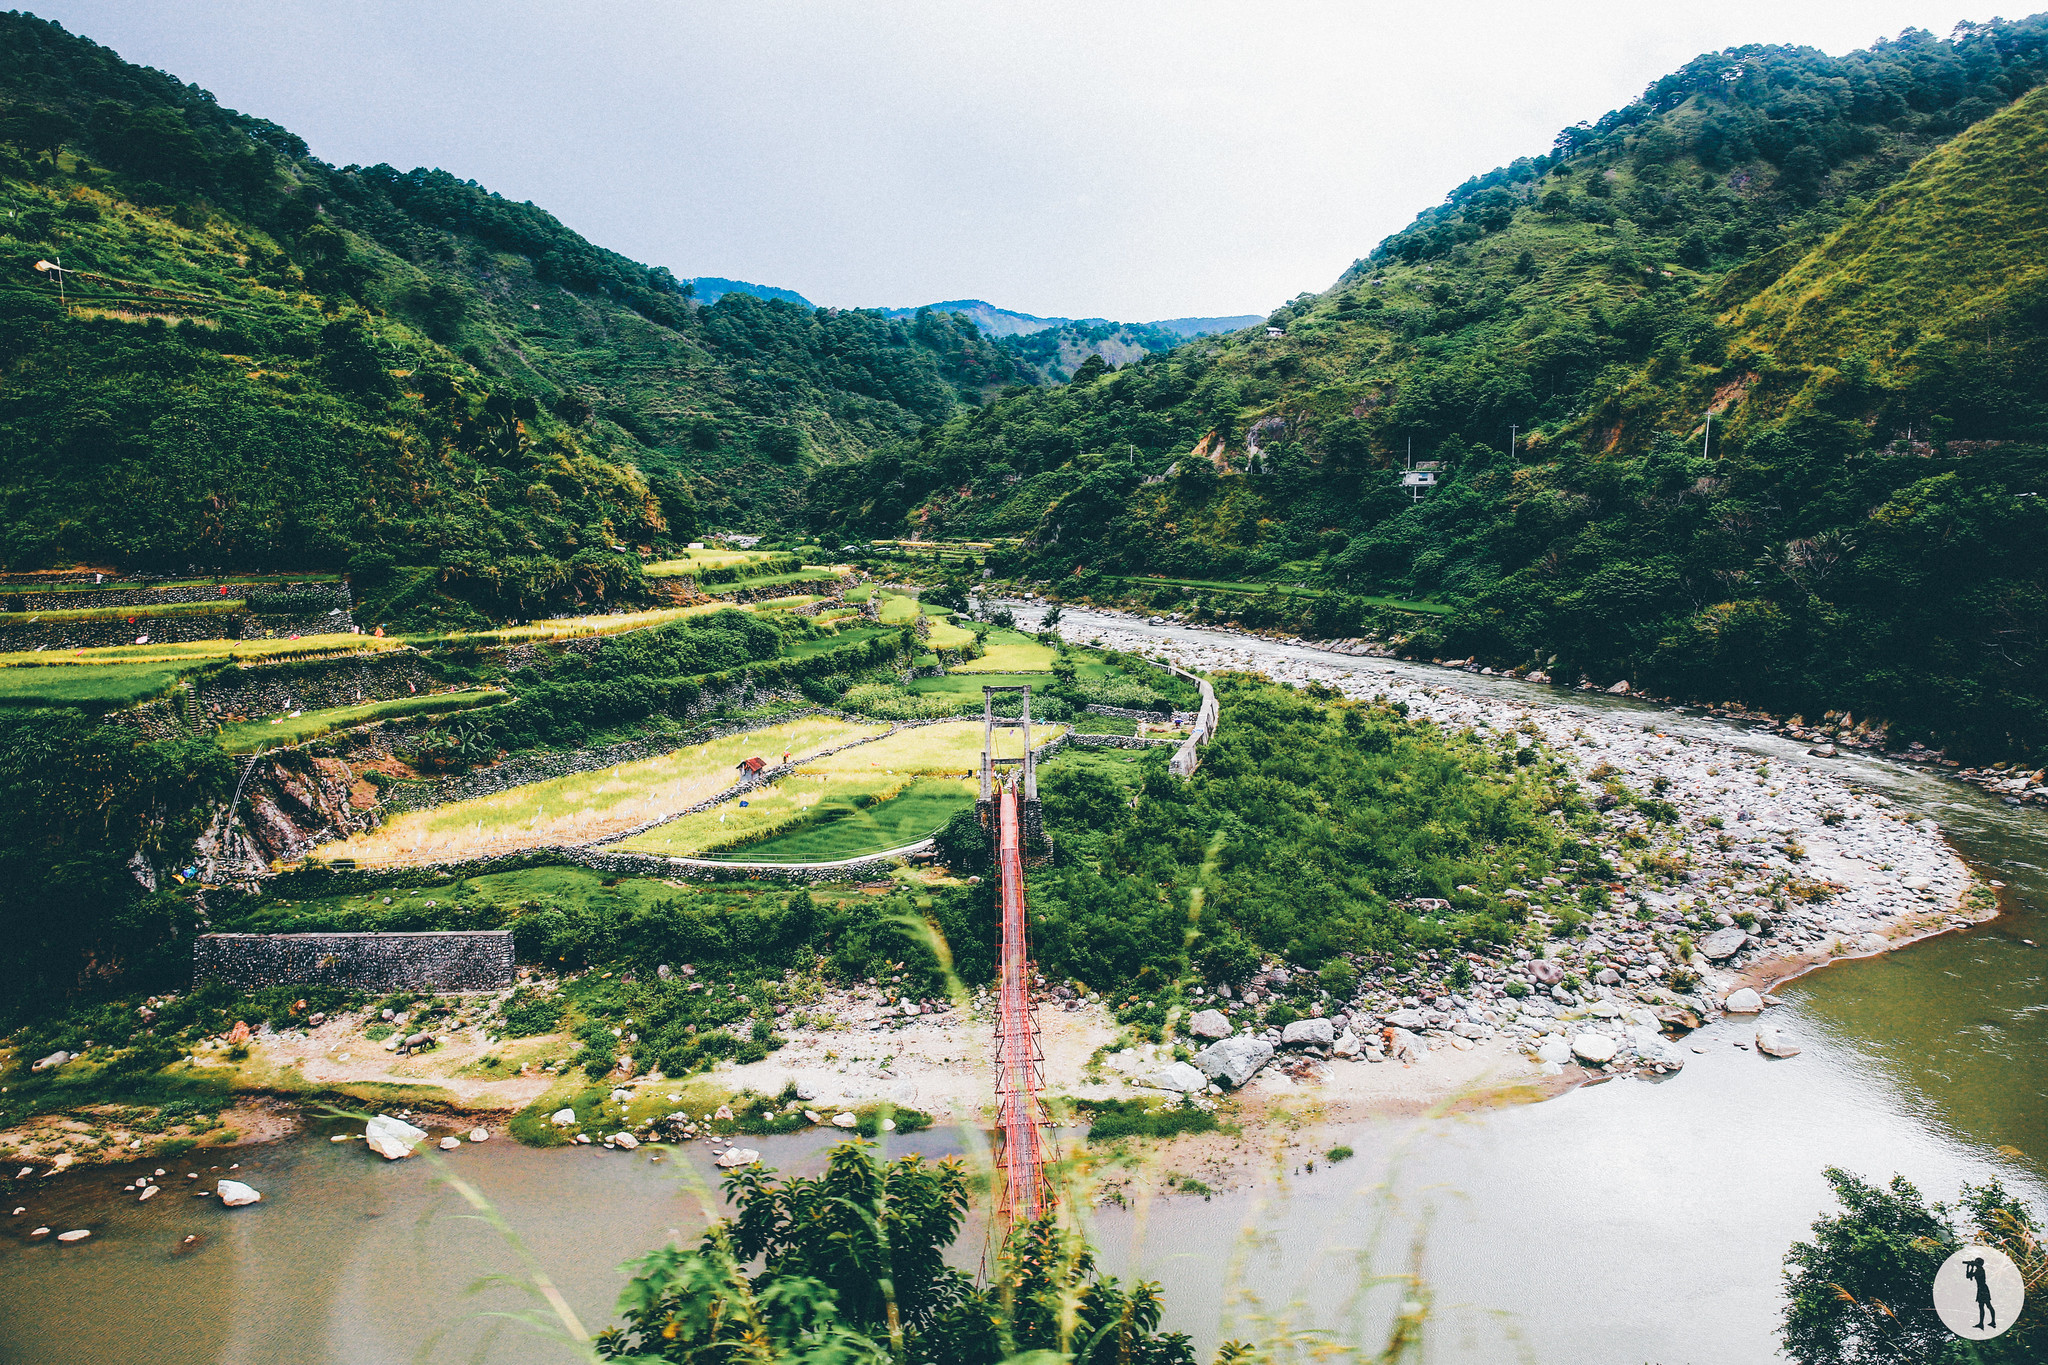 Travel to the Philippines - North Luzon, landscapes from the autobus to the rice terraces